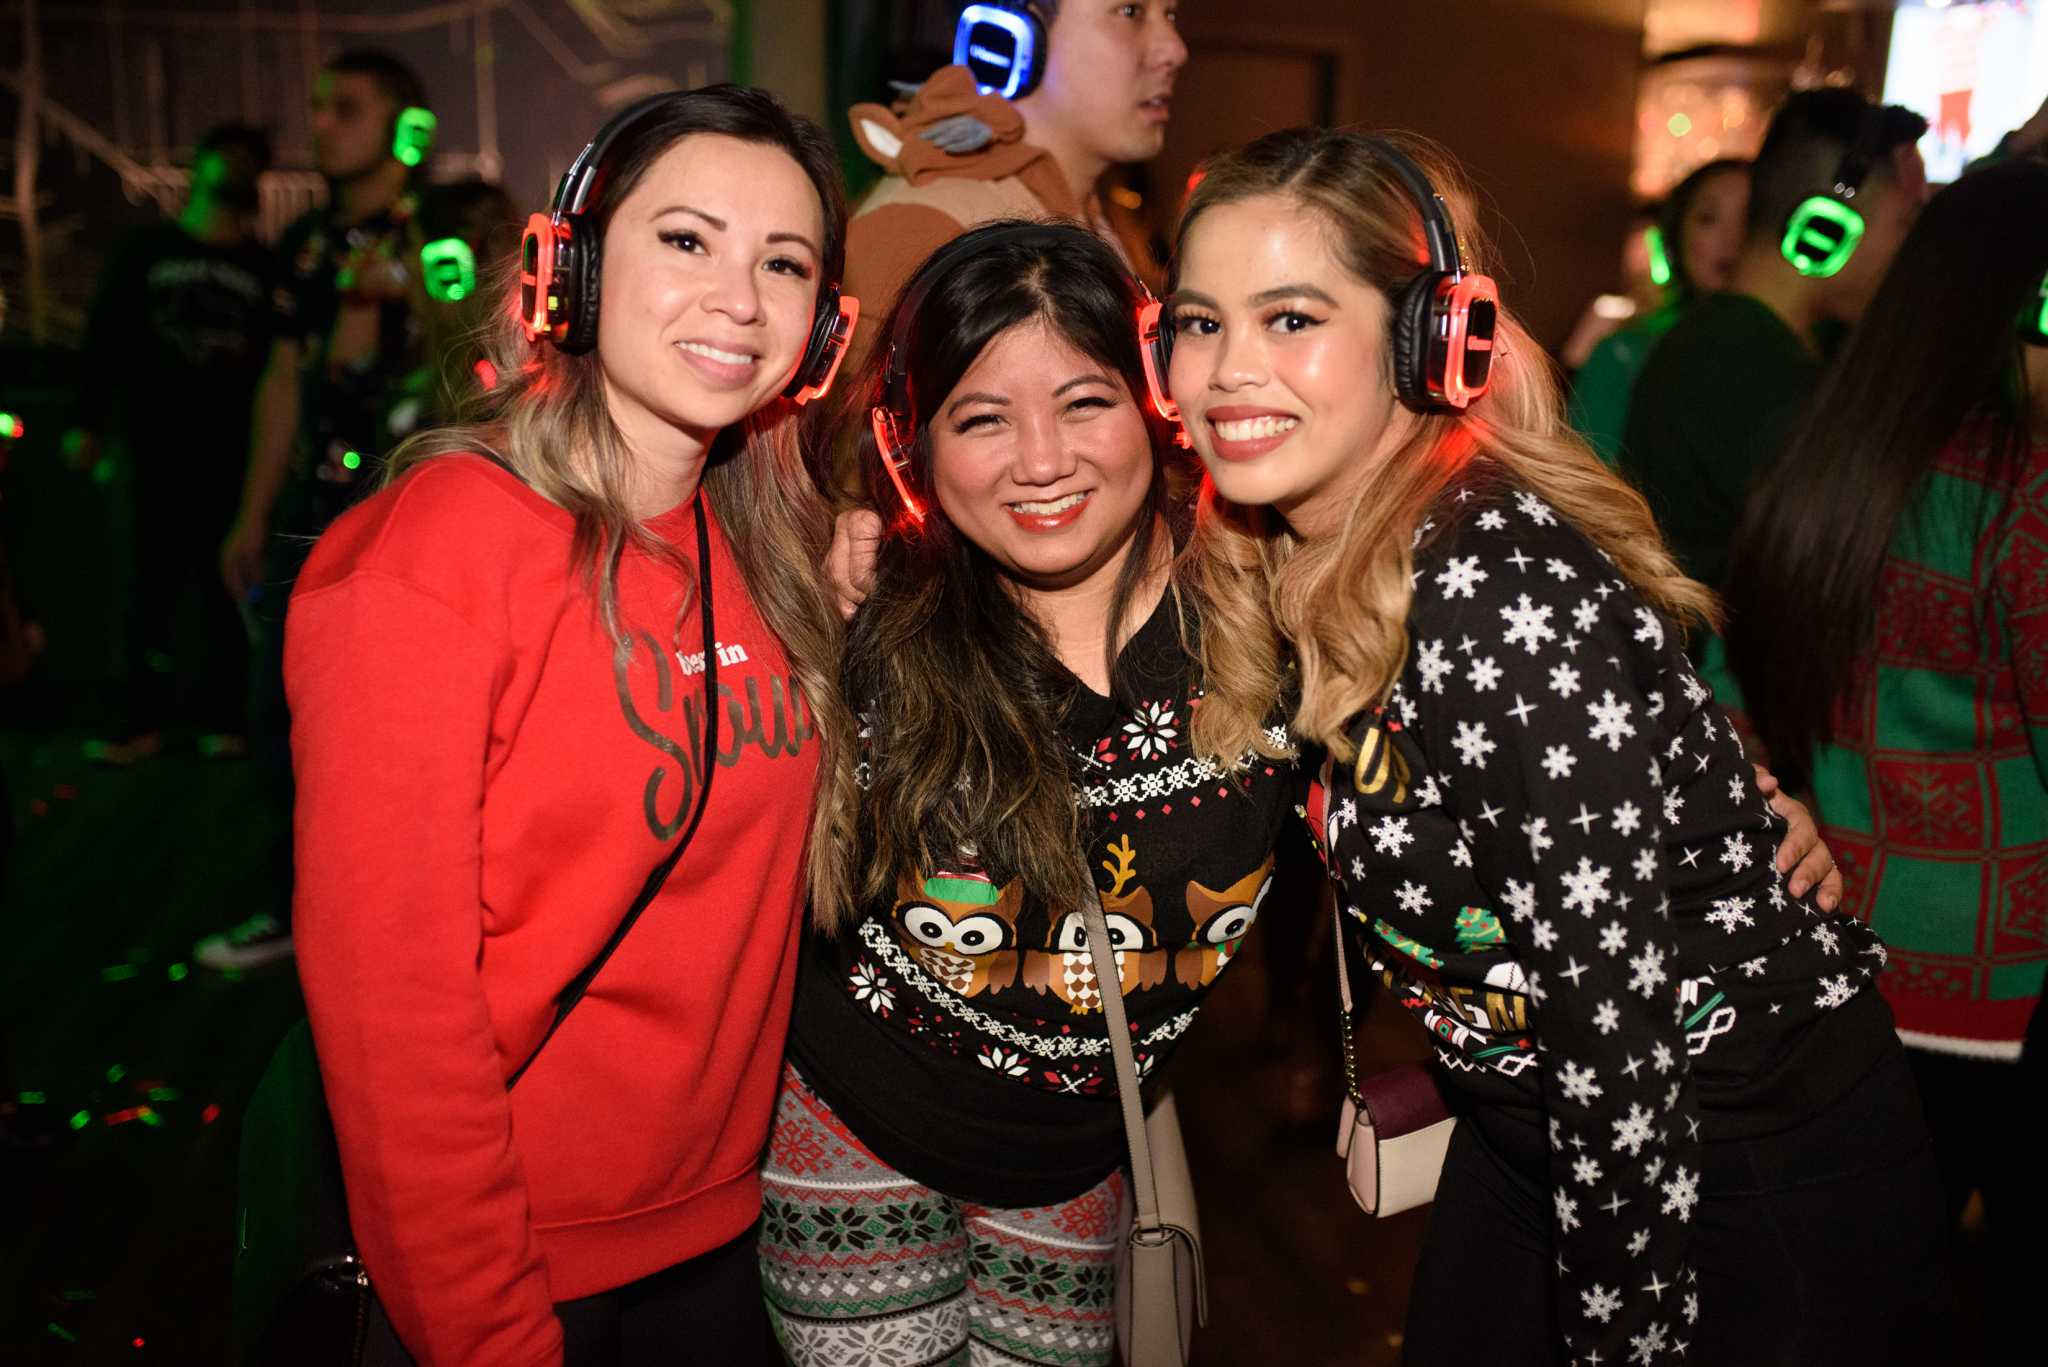 Surreal moments captured at Houston's Silent Disco 'Ugly Sweater' Bash